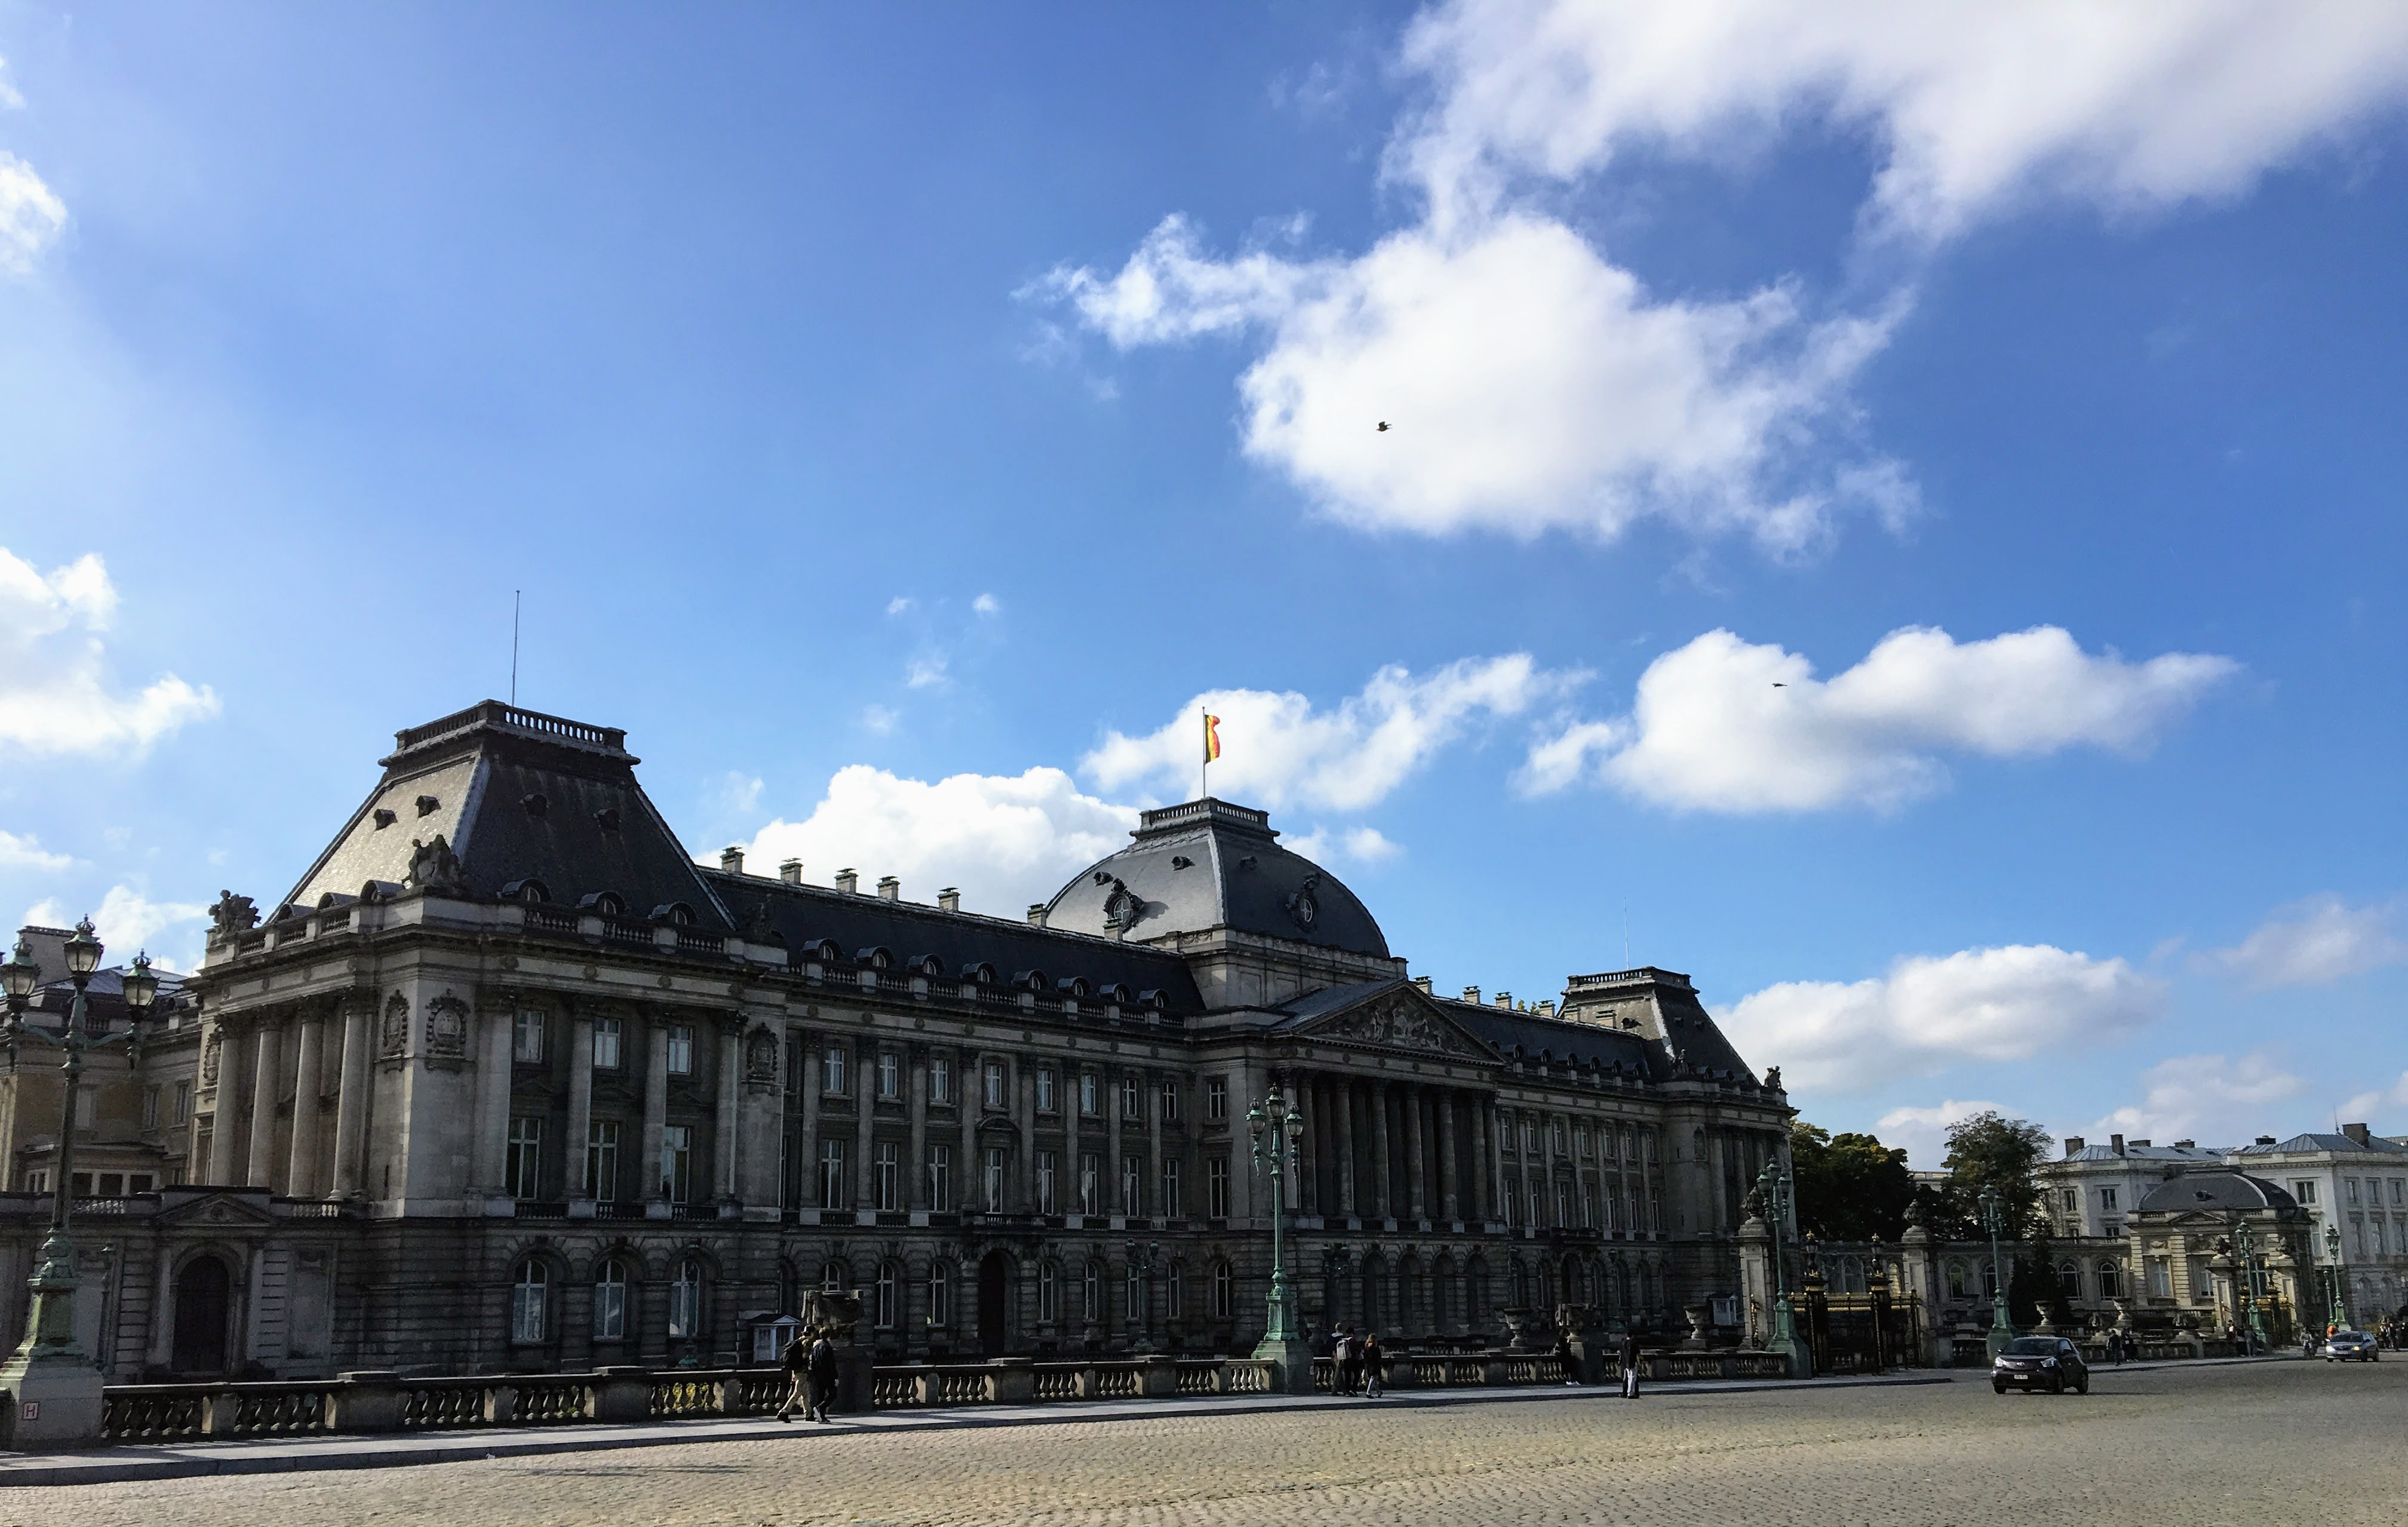 The Royal Palace in Brussels, Belgium